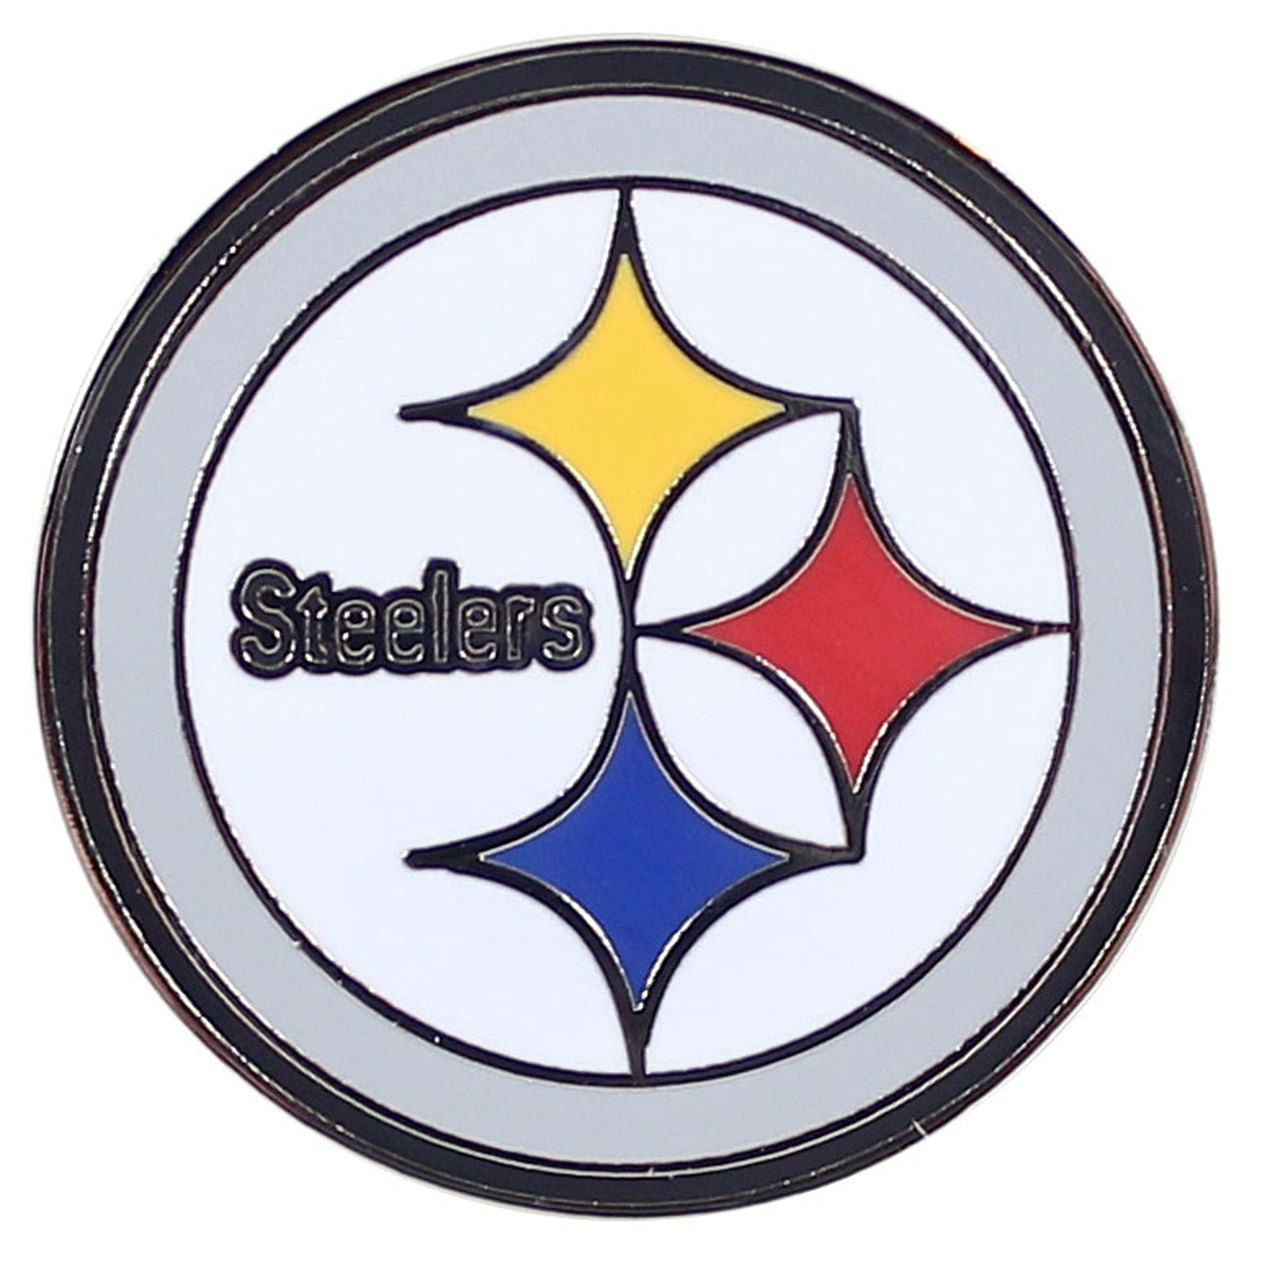 Pittsburgh Steelers Logo Pin.